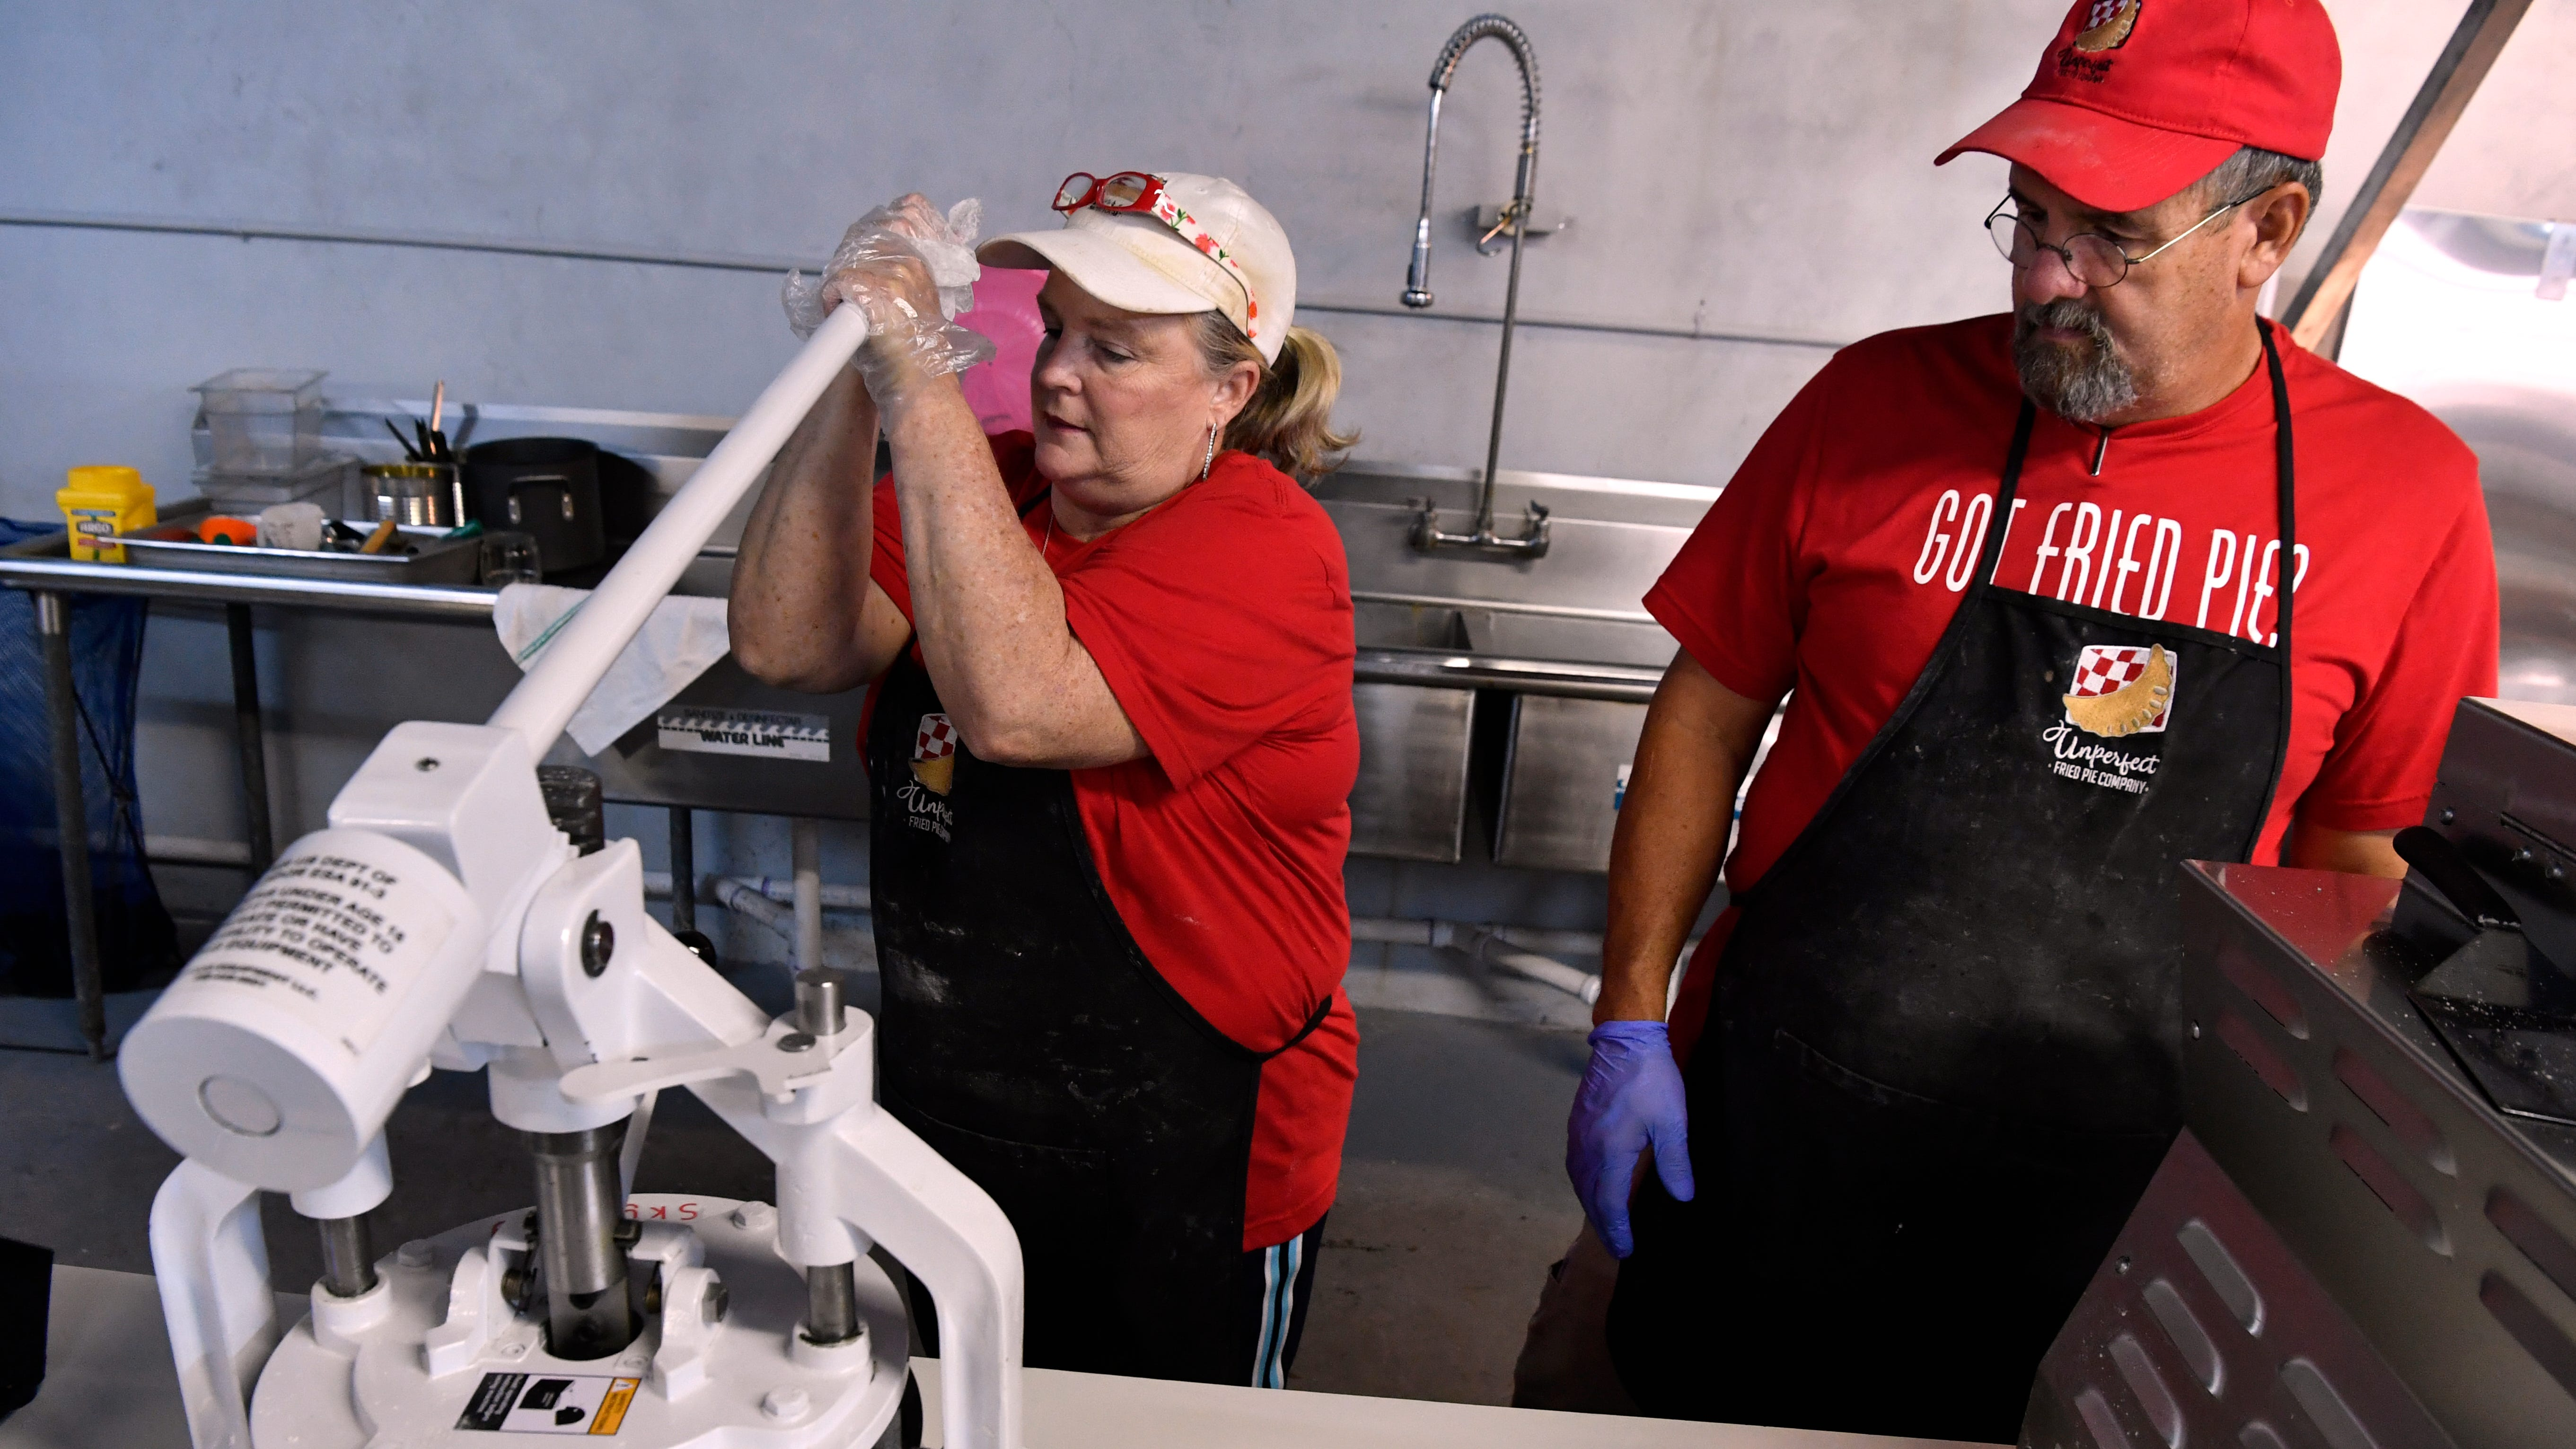 Charlotte Herman uses a machine to cut her pie dough into separate blocks while her husband Burney watches August 30, 2018. She is the owner of Unperfect Fried Pies in Stamford.